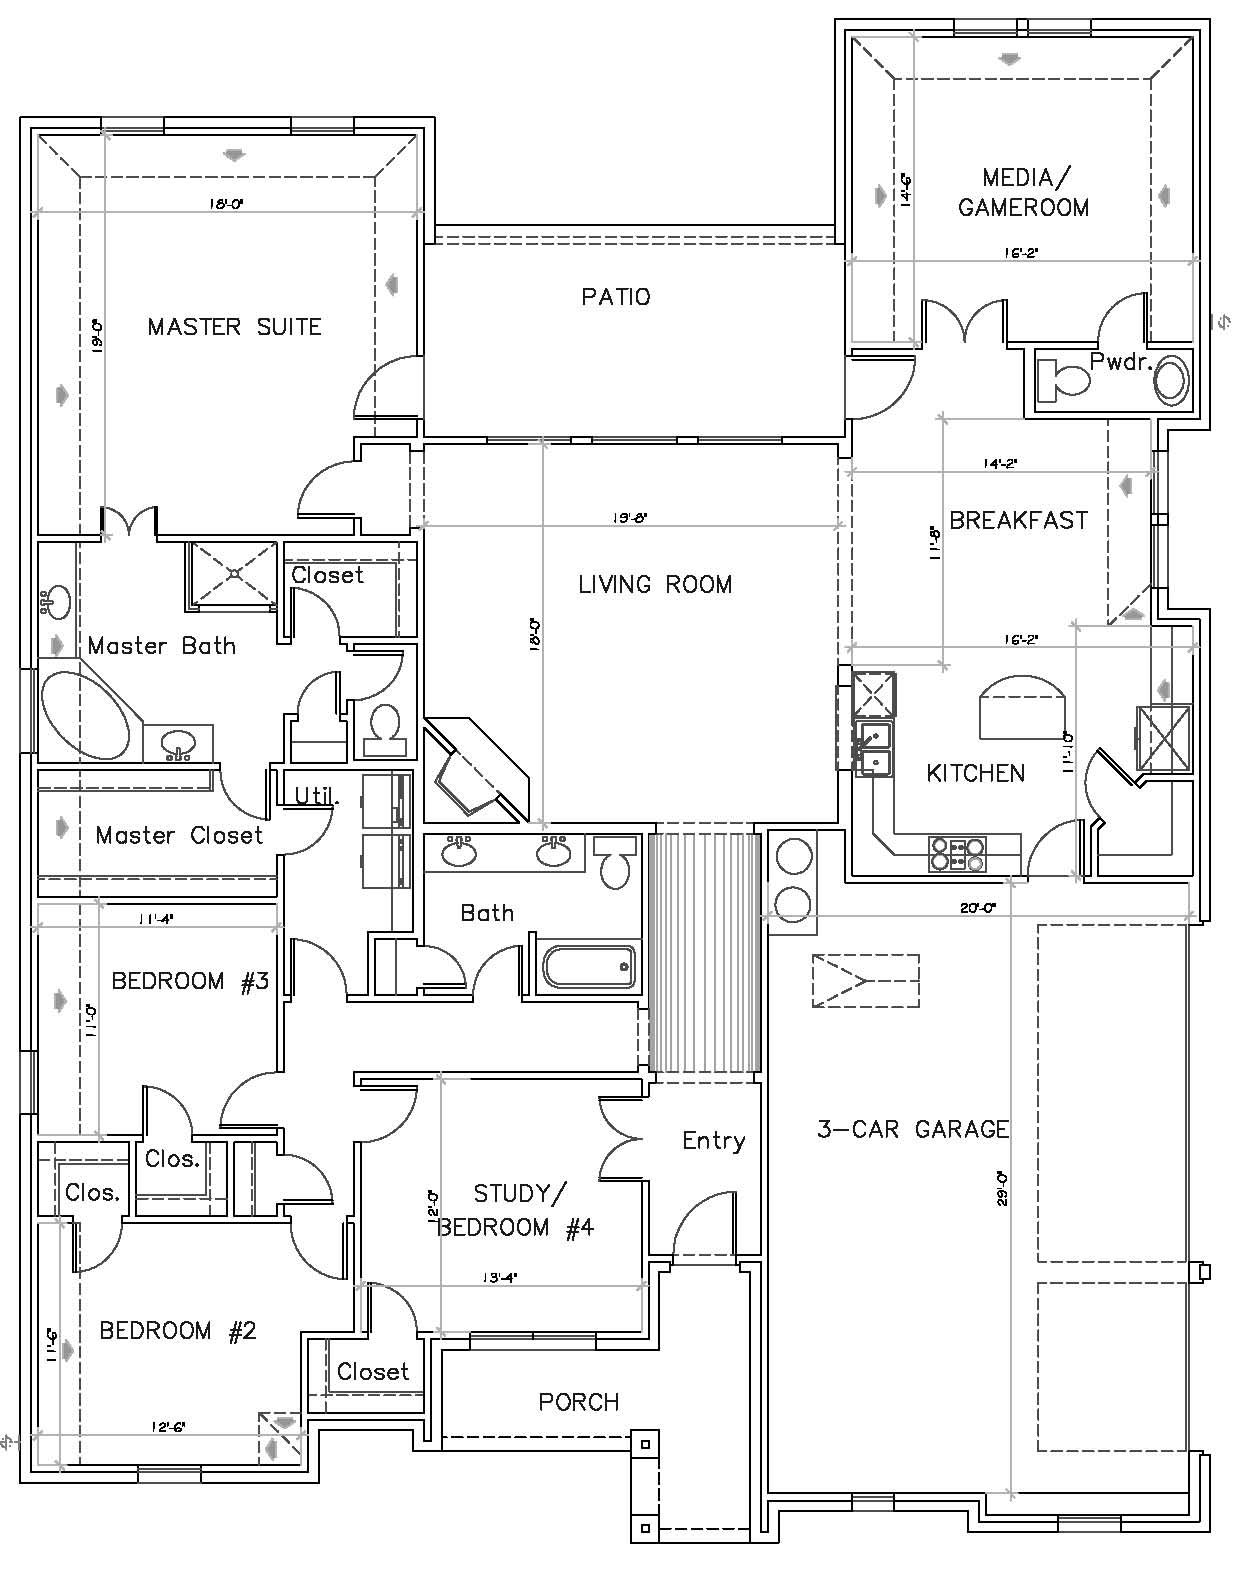 Southfork ranch house plans google search southfork for Southfork ranch floor plan